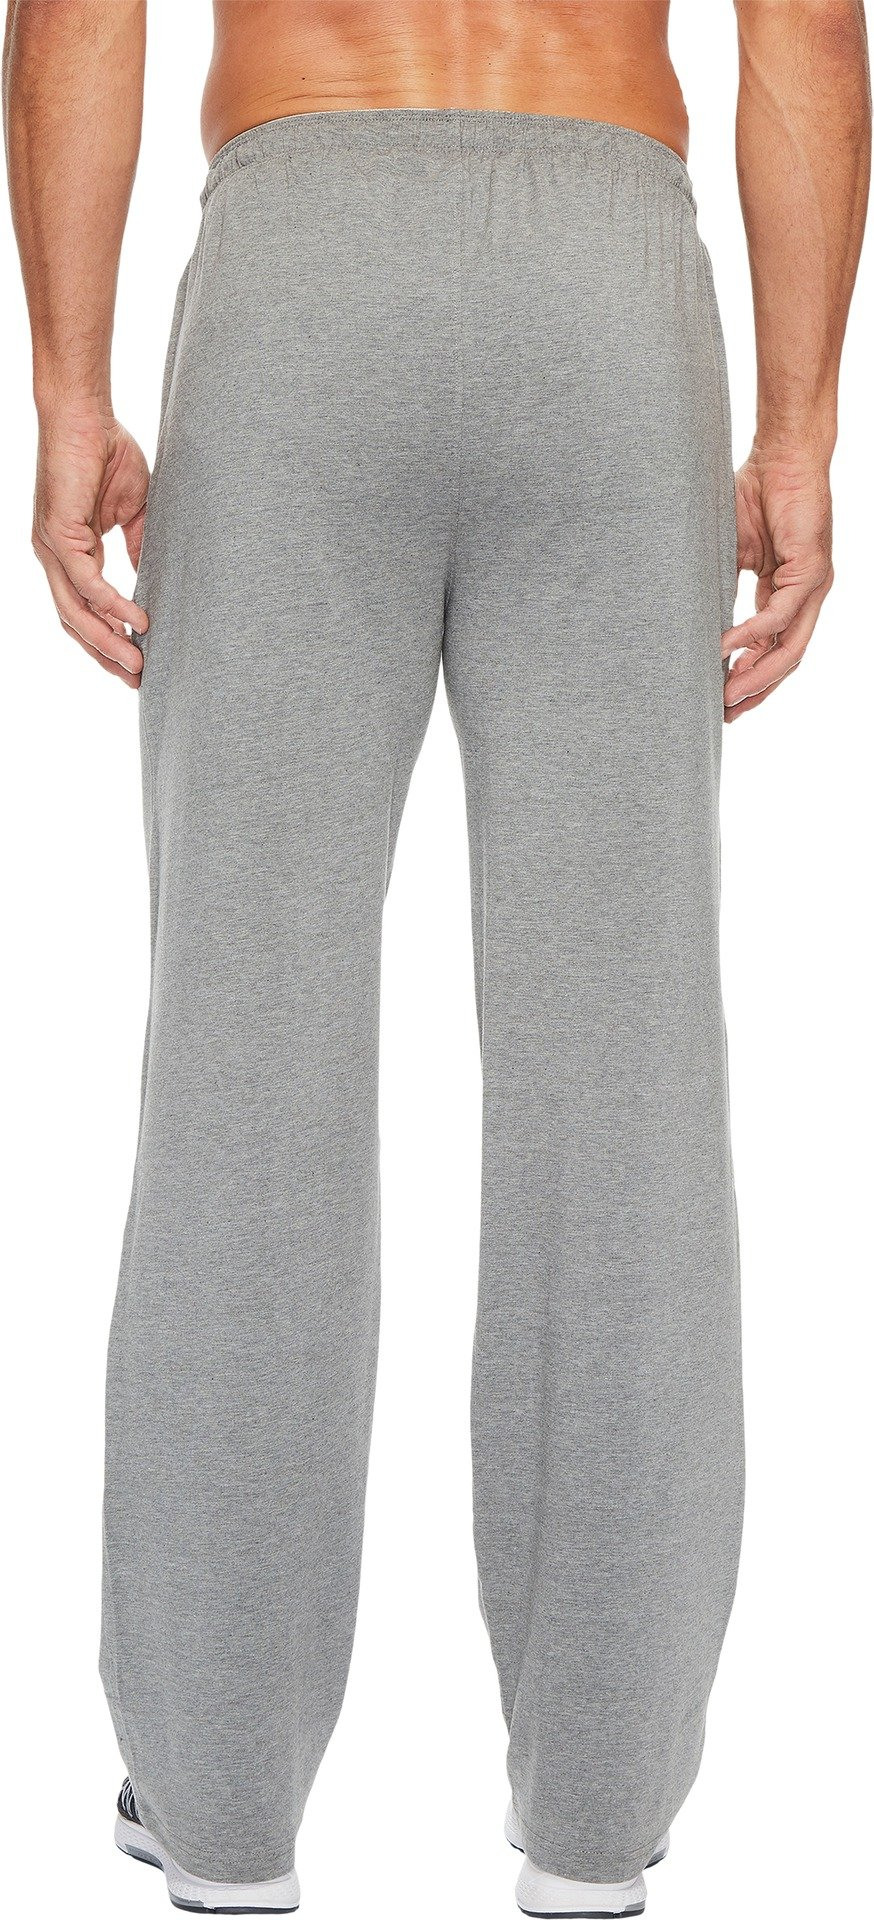 tasc performance men's vital training pants, heather gray, small